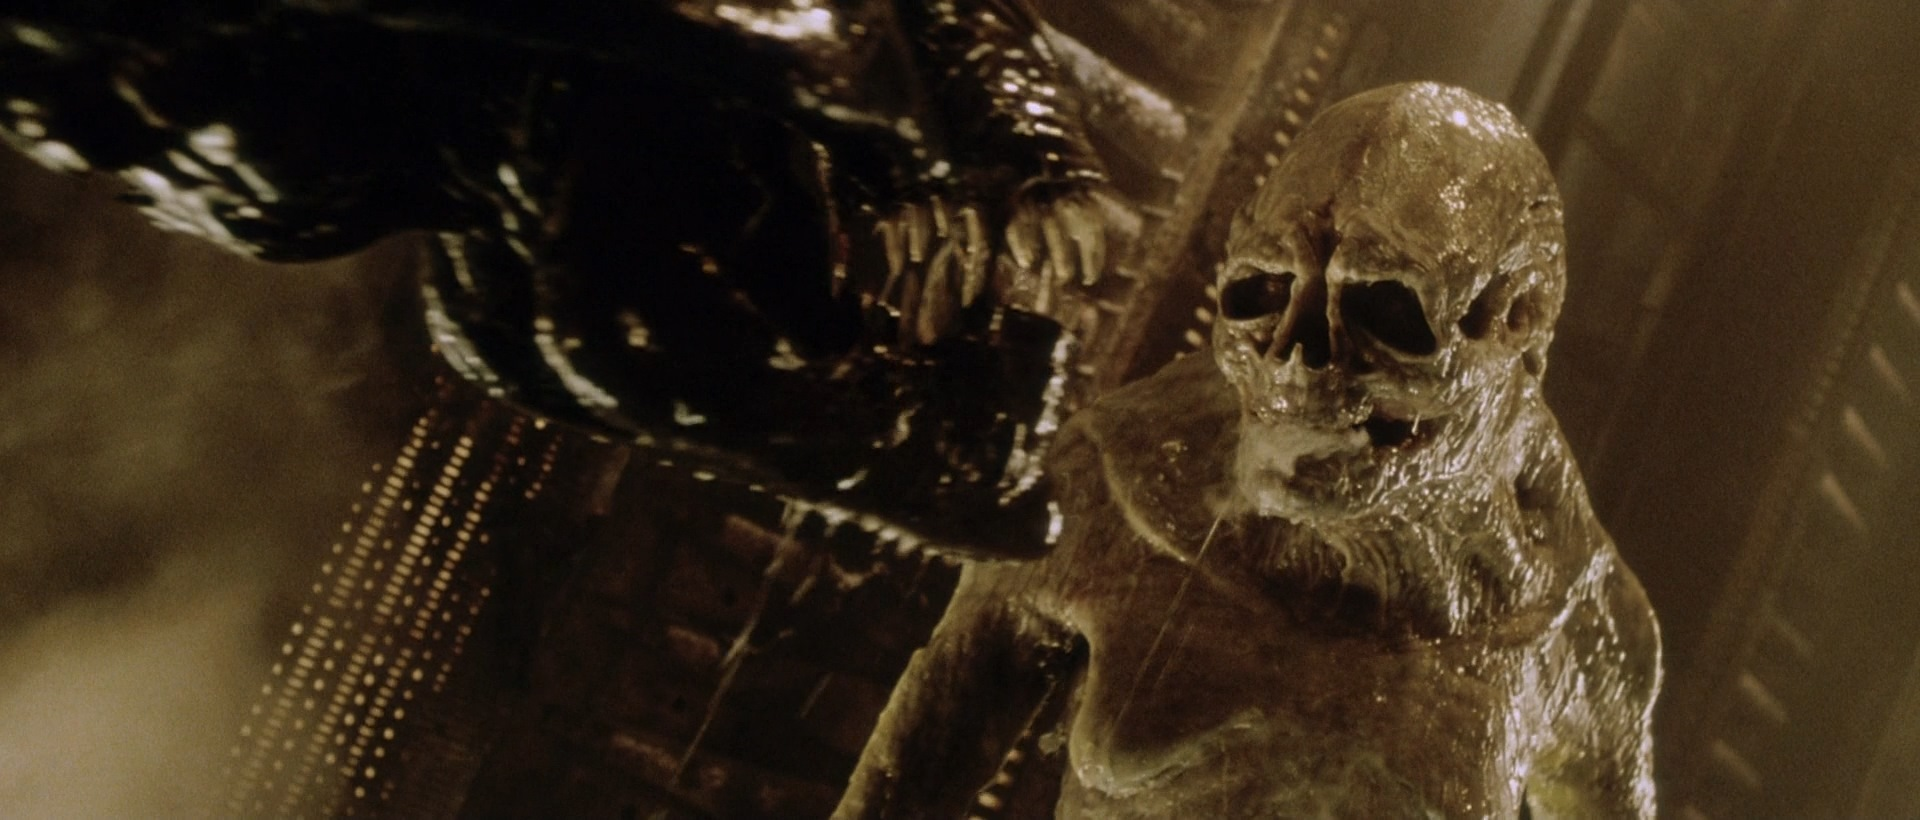 Newborn - Alien Resurrection - Alien Life Cycle - AvPGalaxy